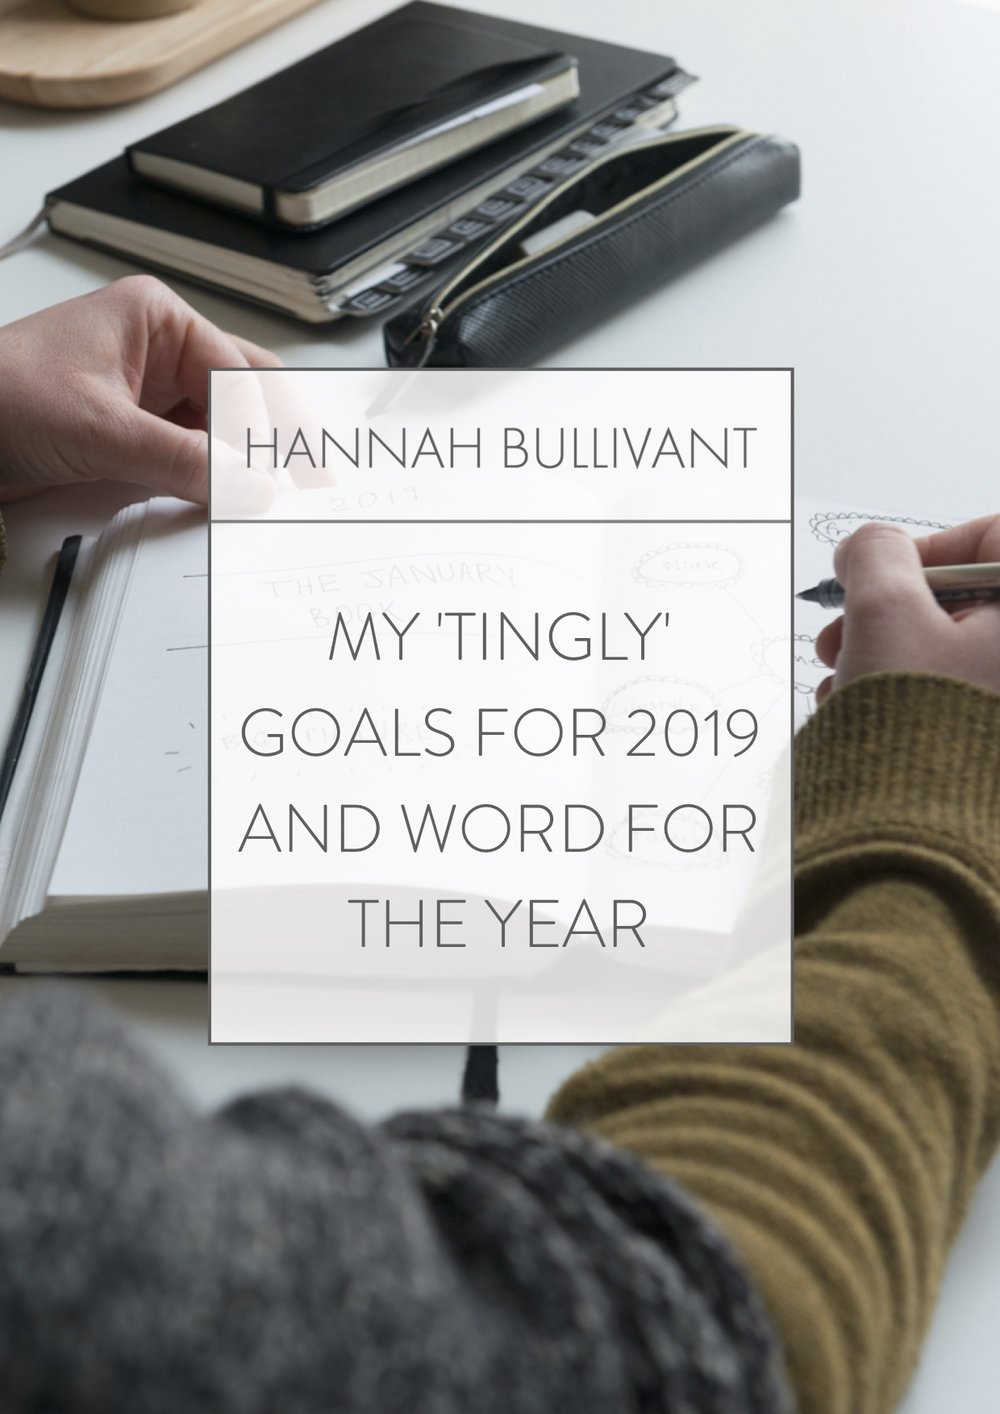 My tingly goals for 2019 and word for the year   hannahbullivant.com